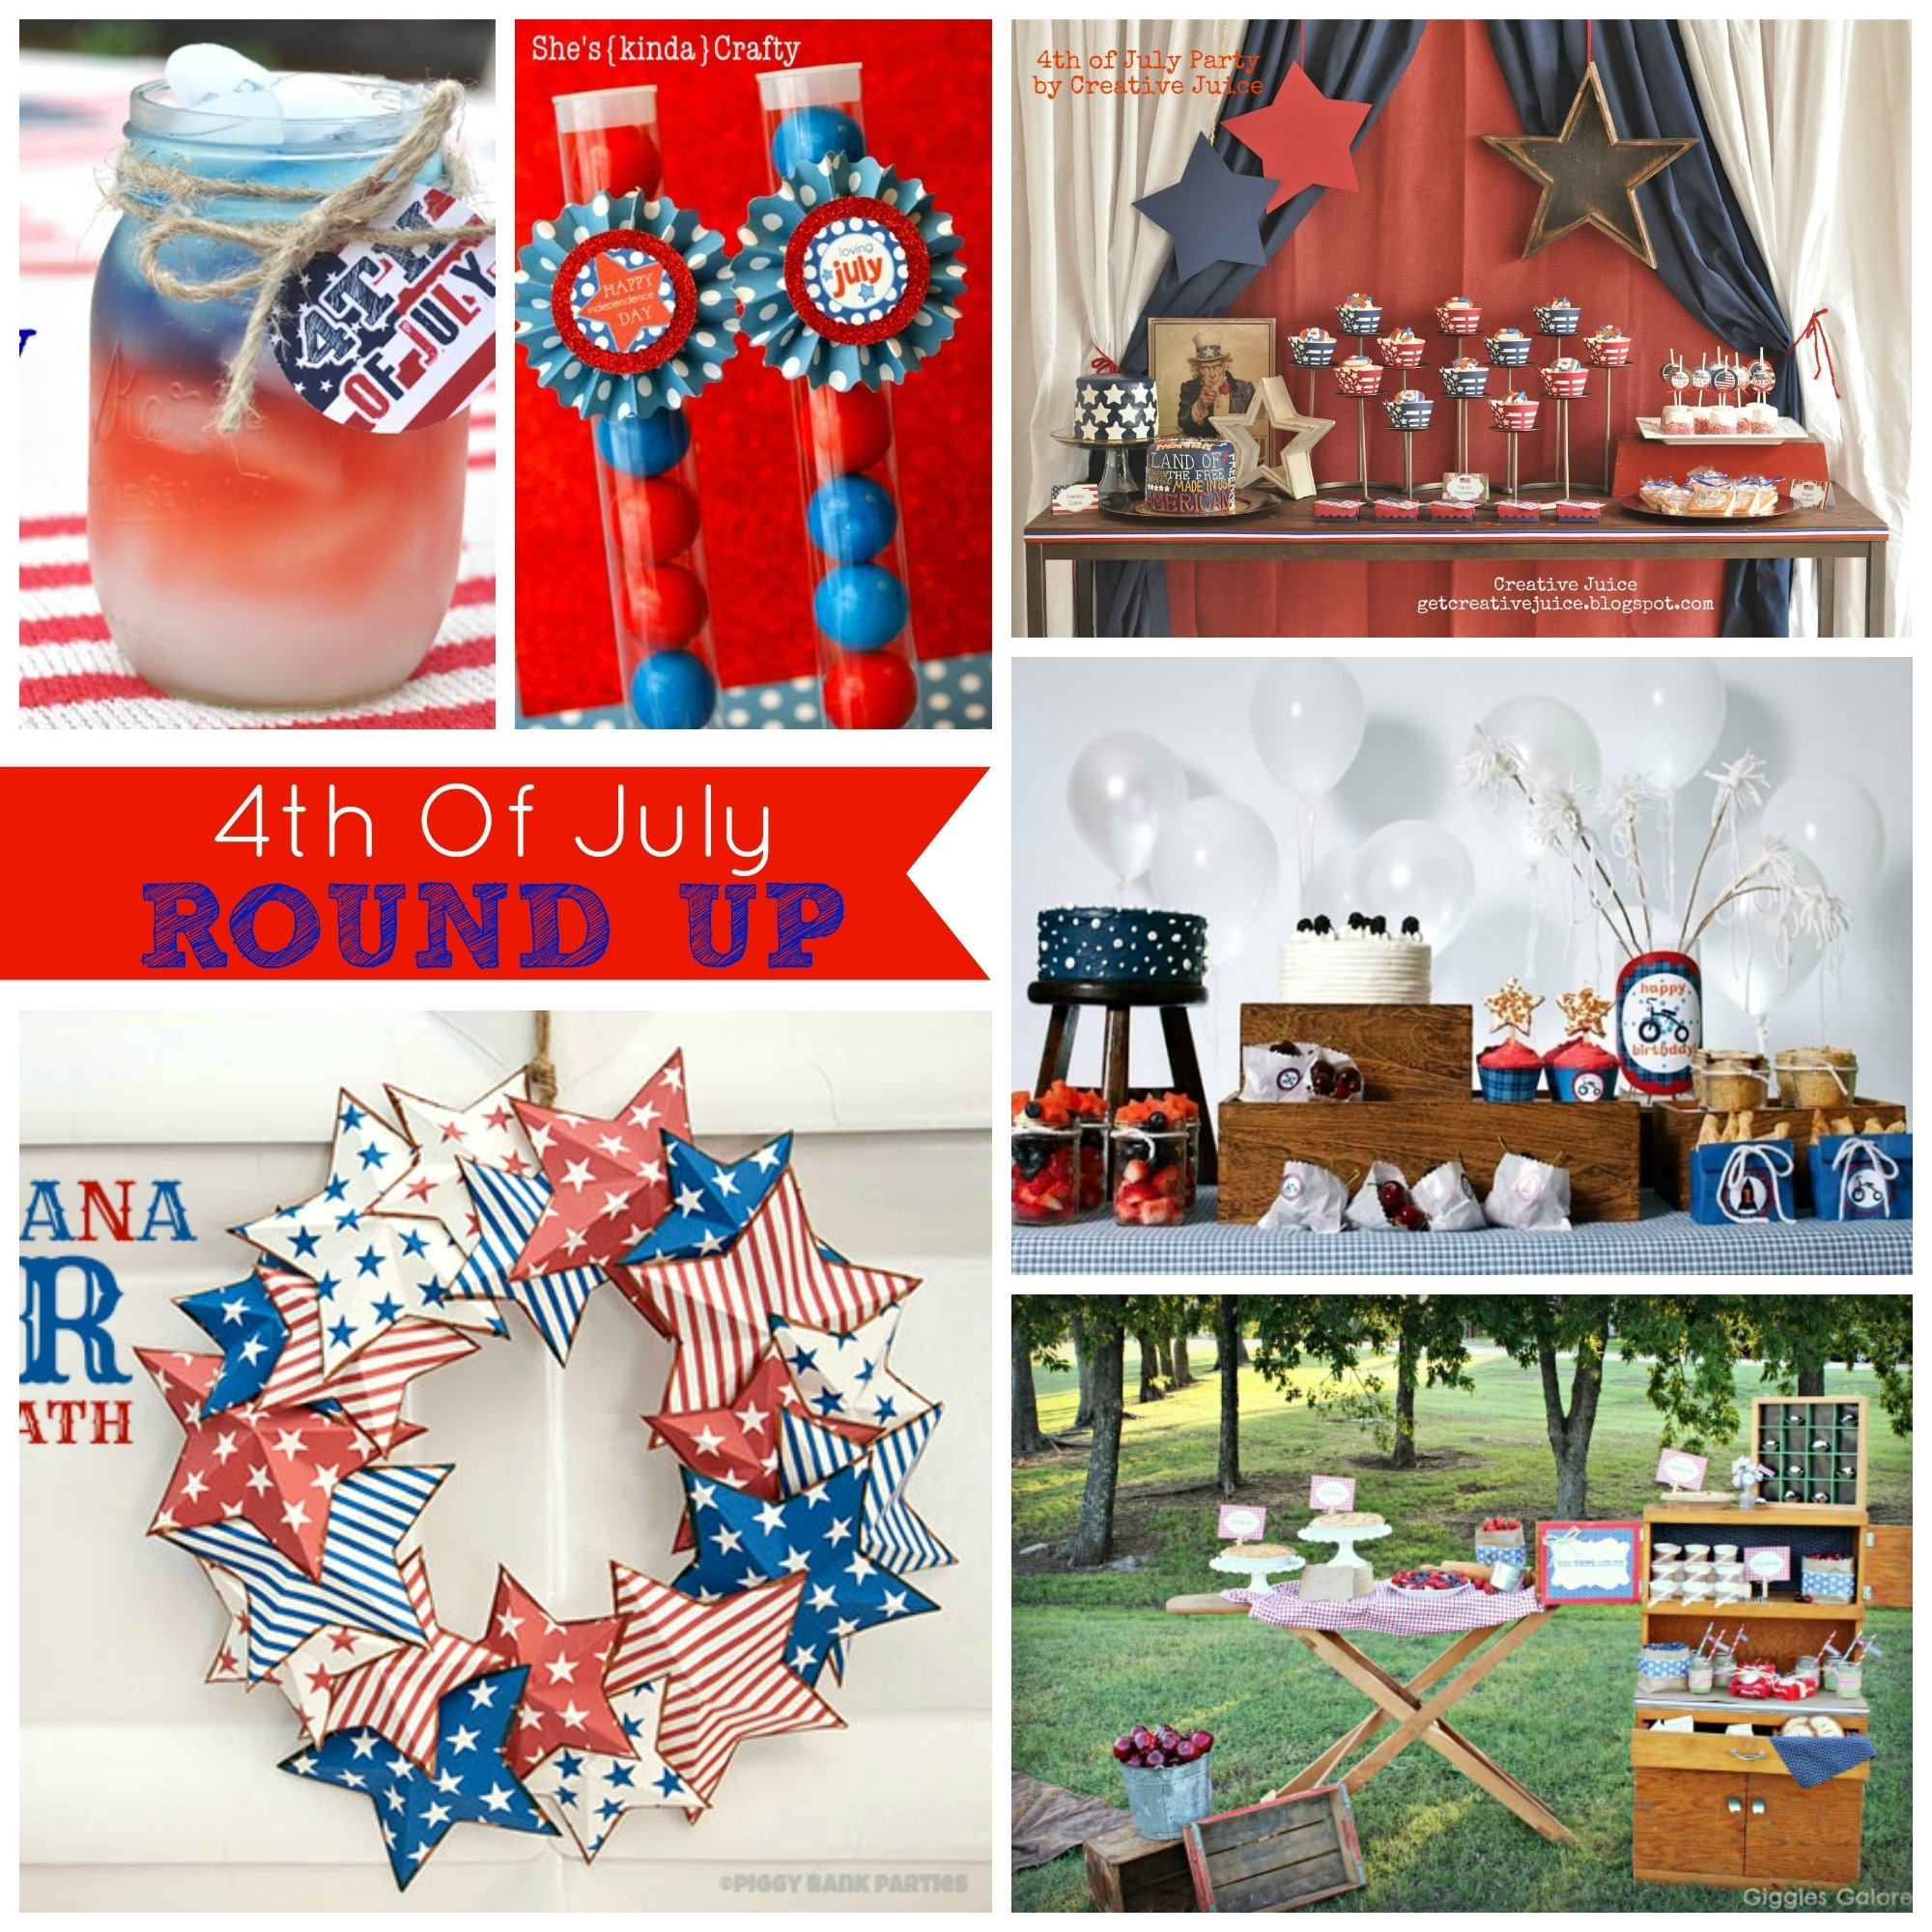 10 Most Recommended Ideas For Fourth Of July Party round up 4th of july party ideas creative juice 4 2020